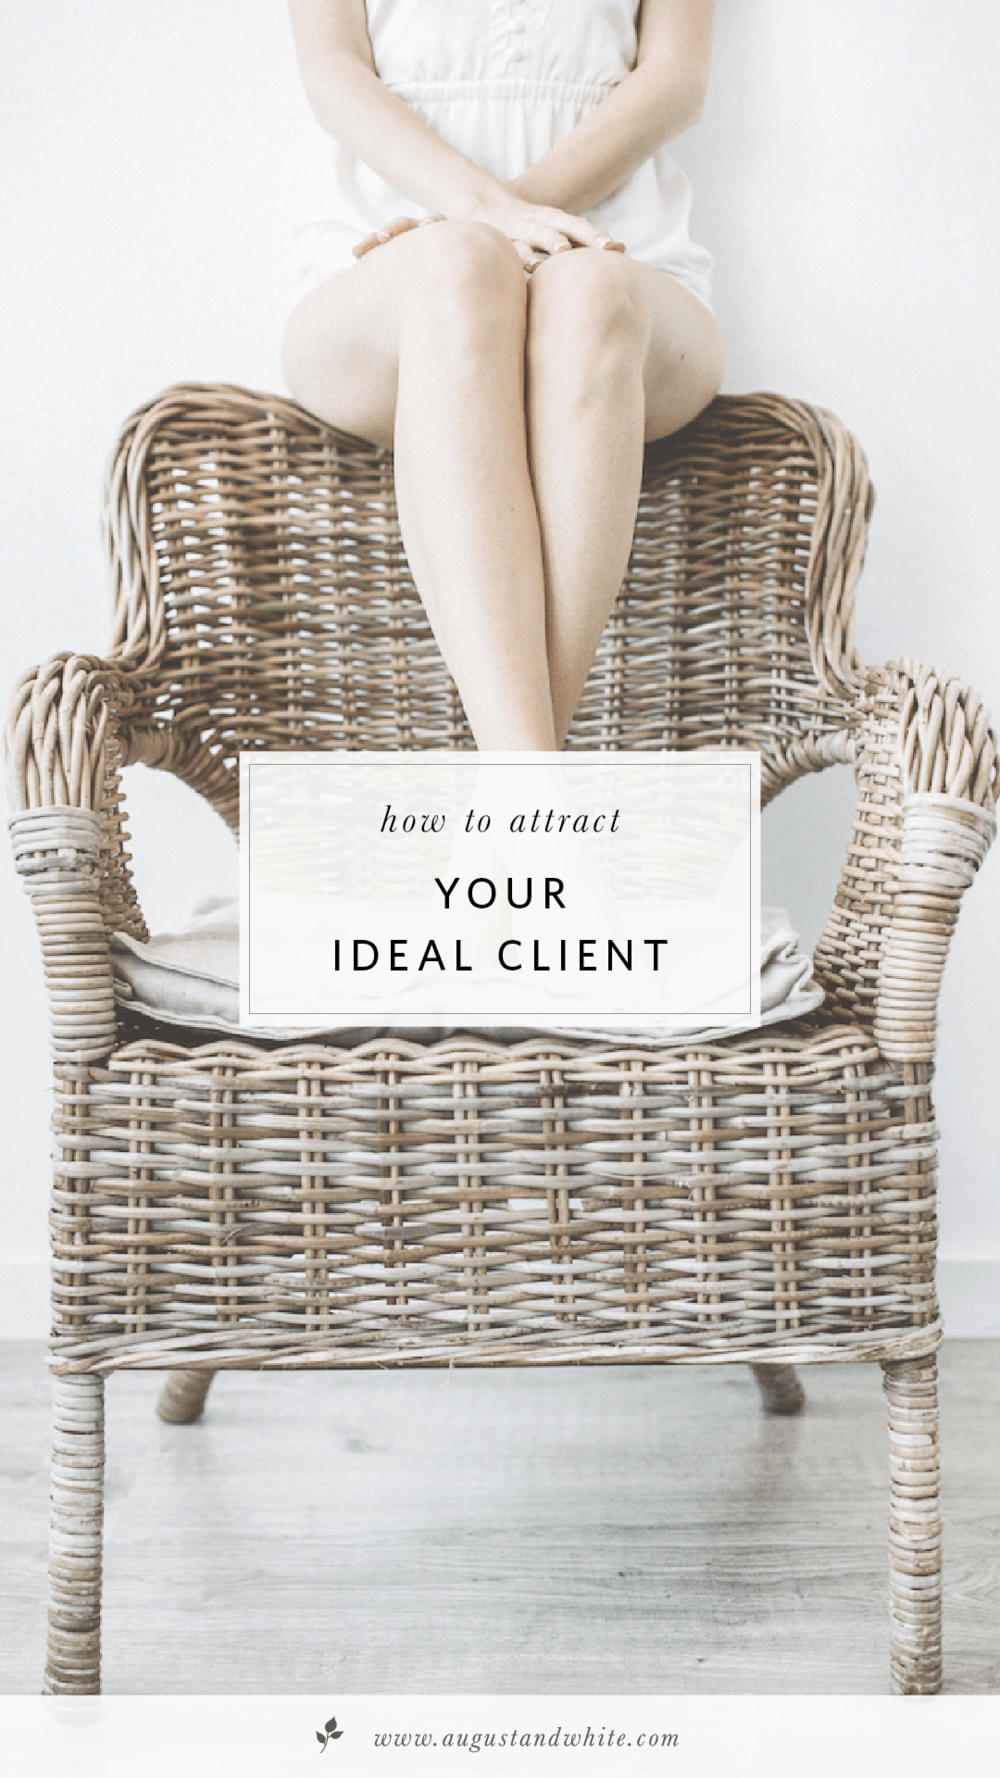 How to Attract Your Ideal Client Client profile, How to